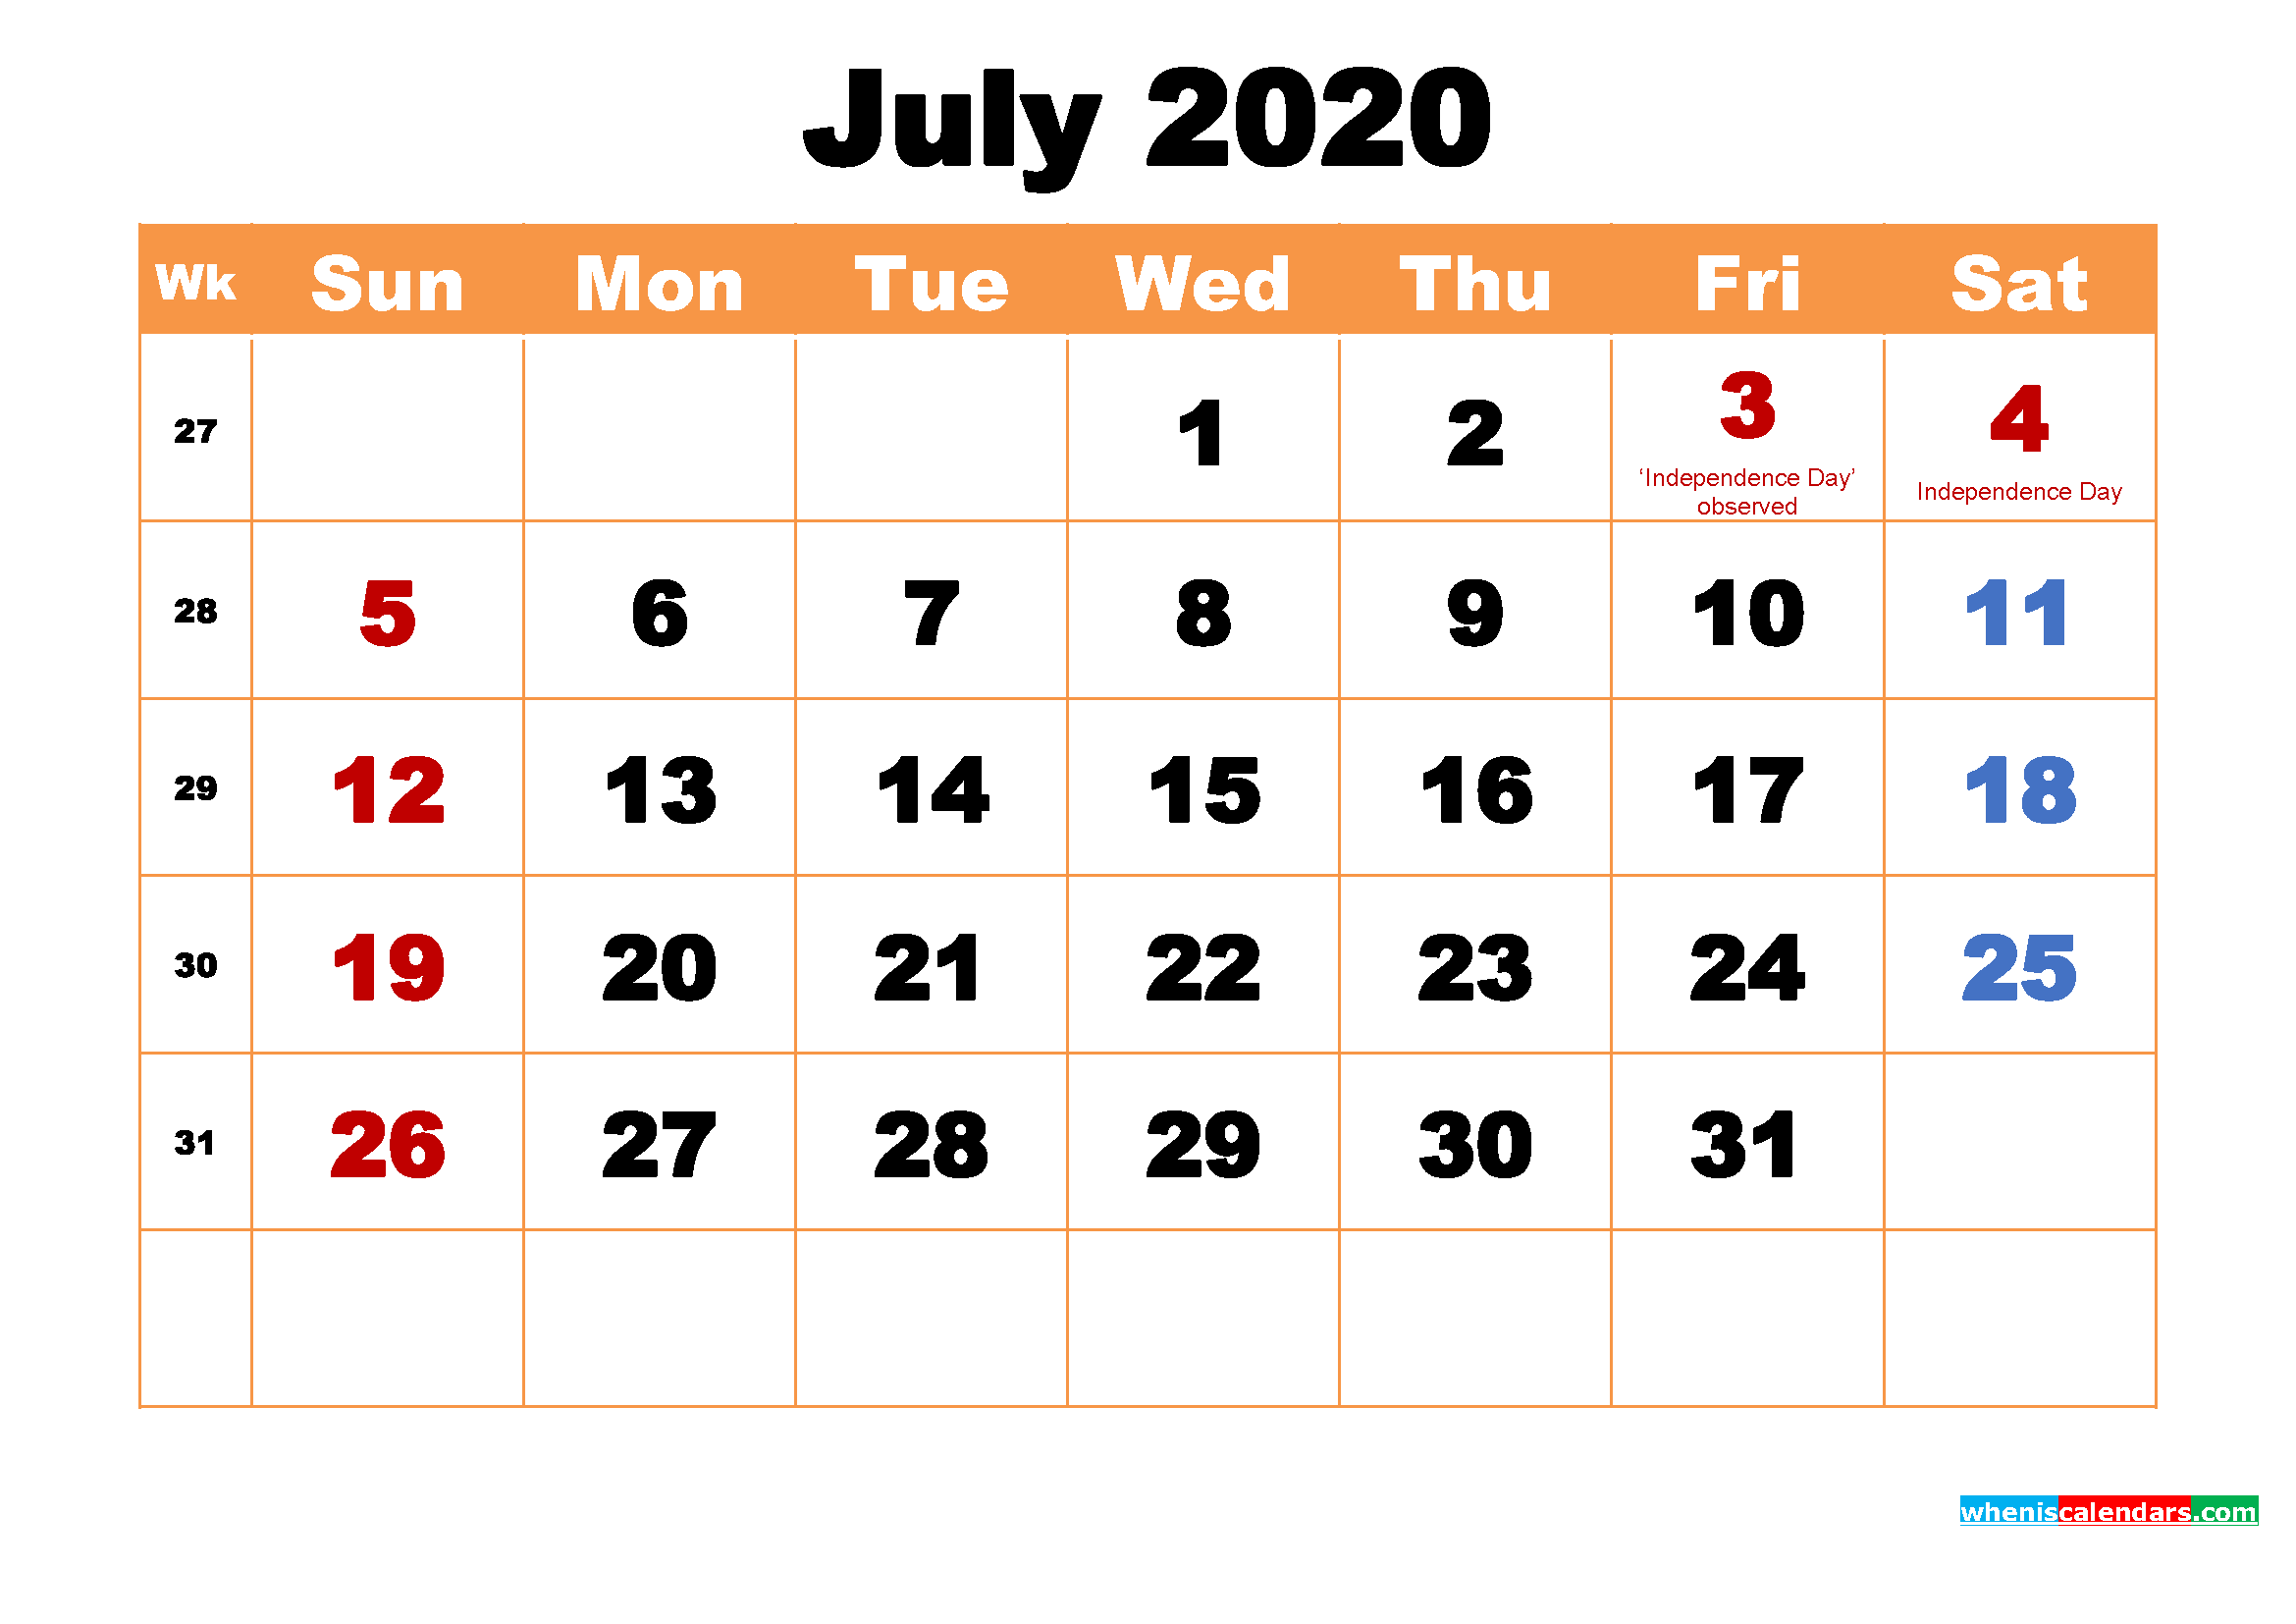 July 2020 Calendar Wallpaper High Resolution